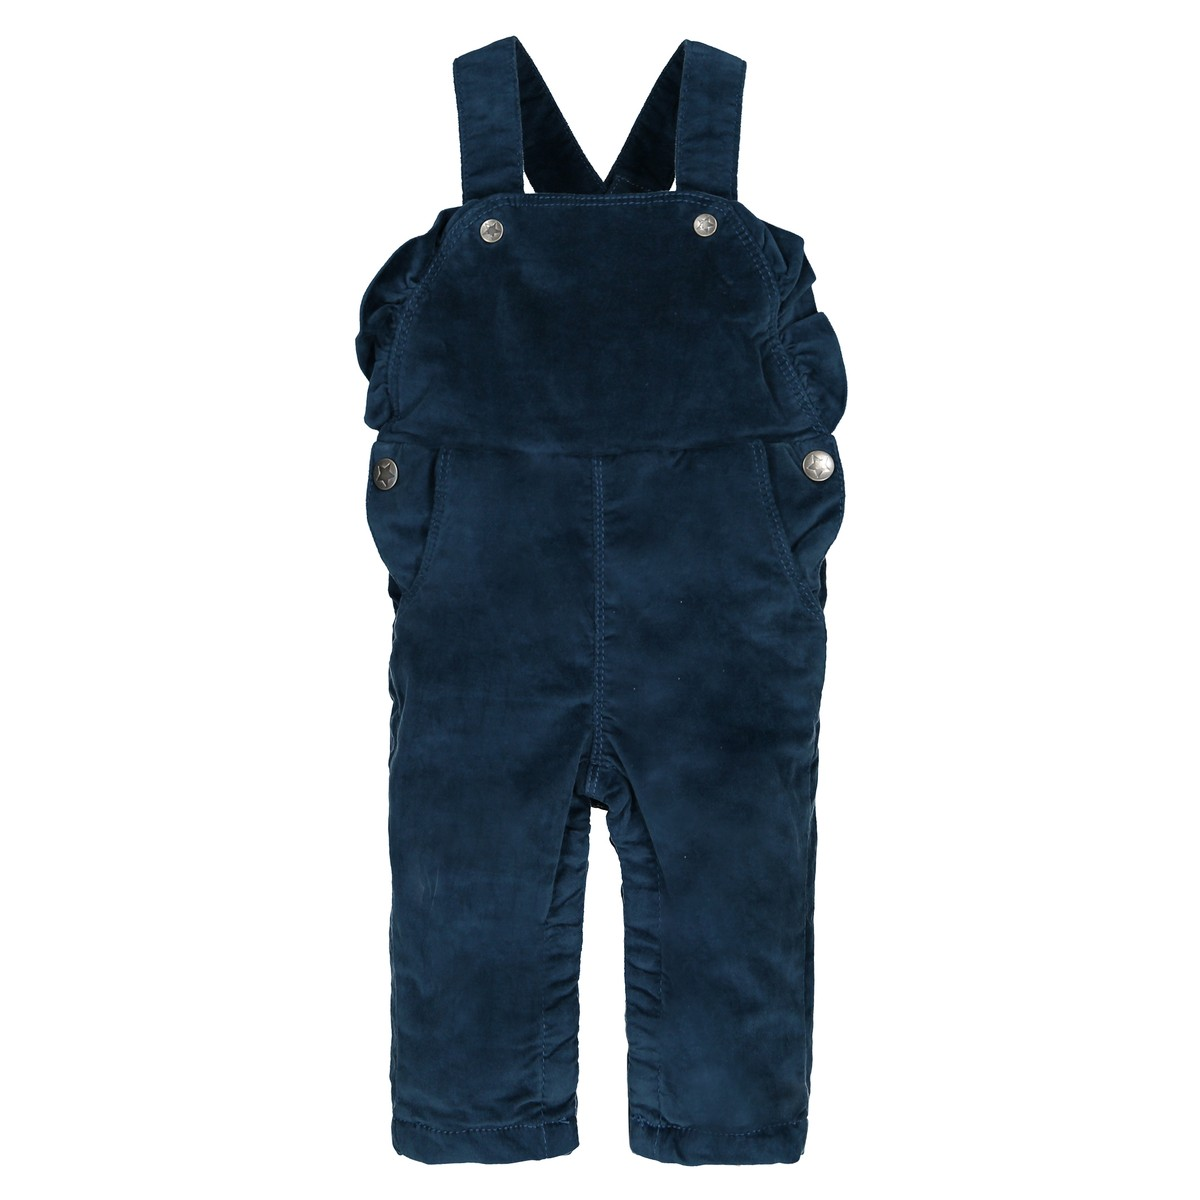 velour-baby-frill-dungarees